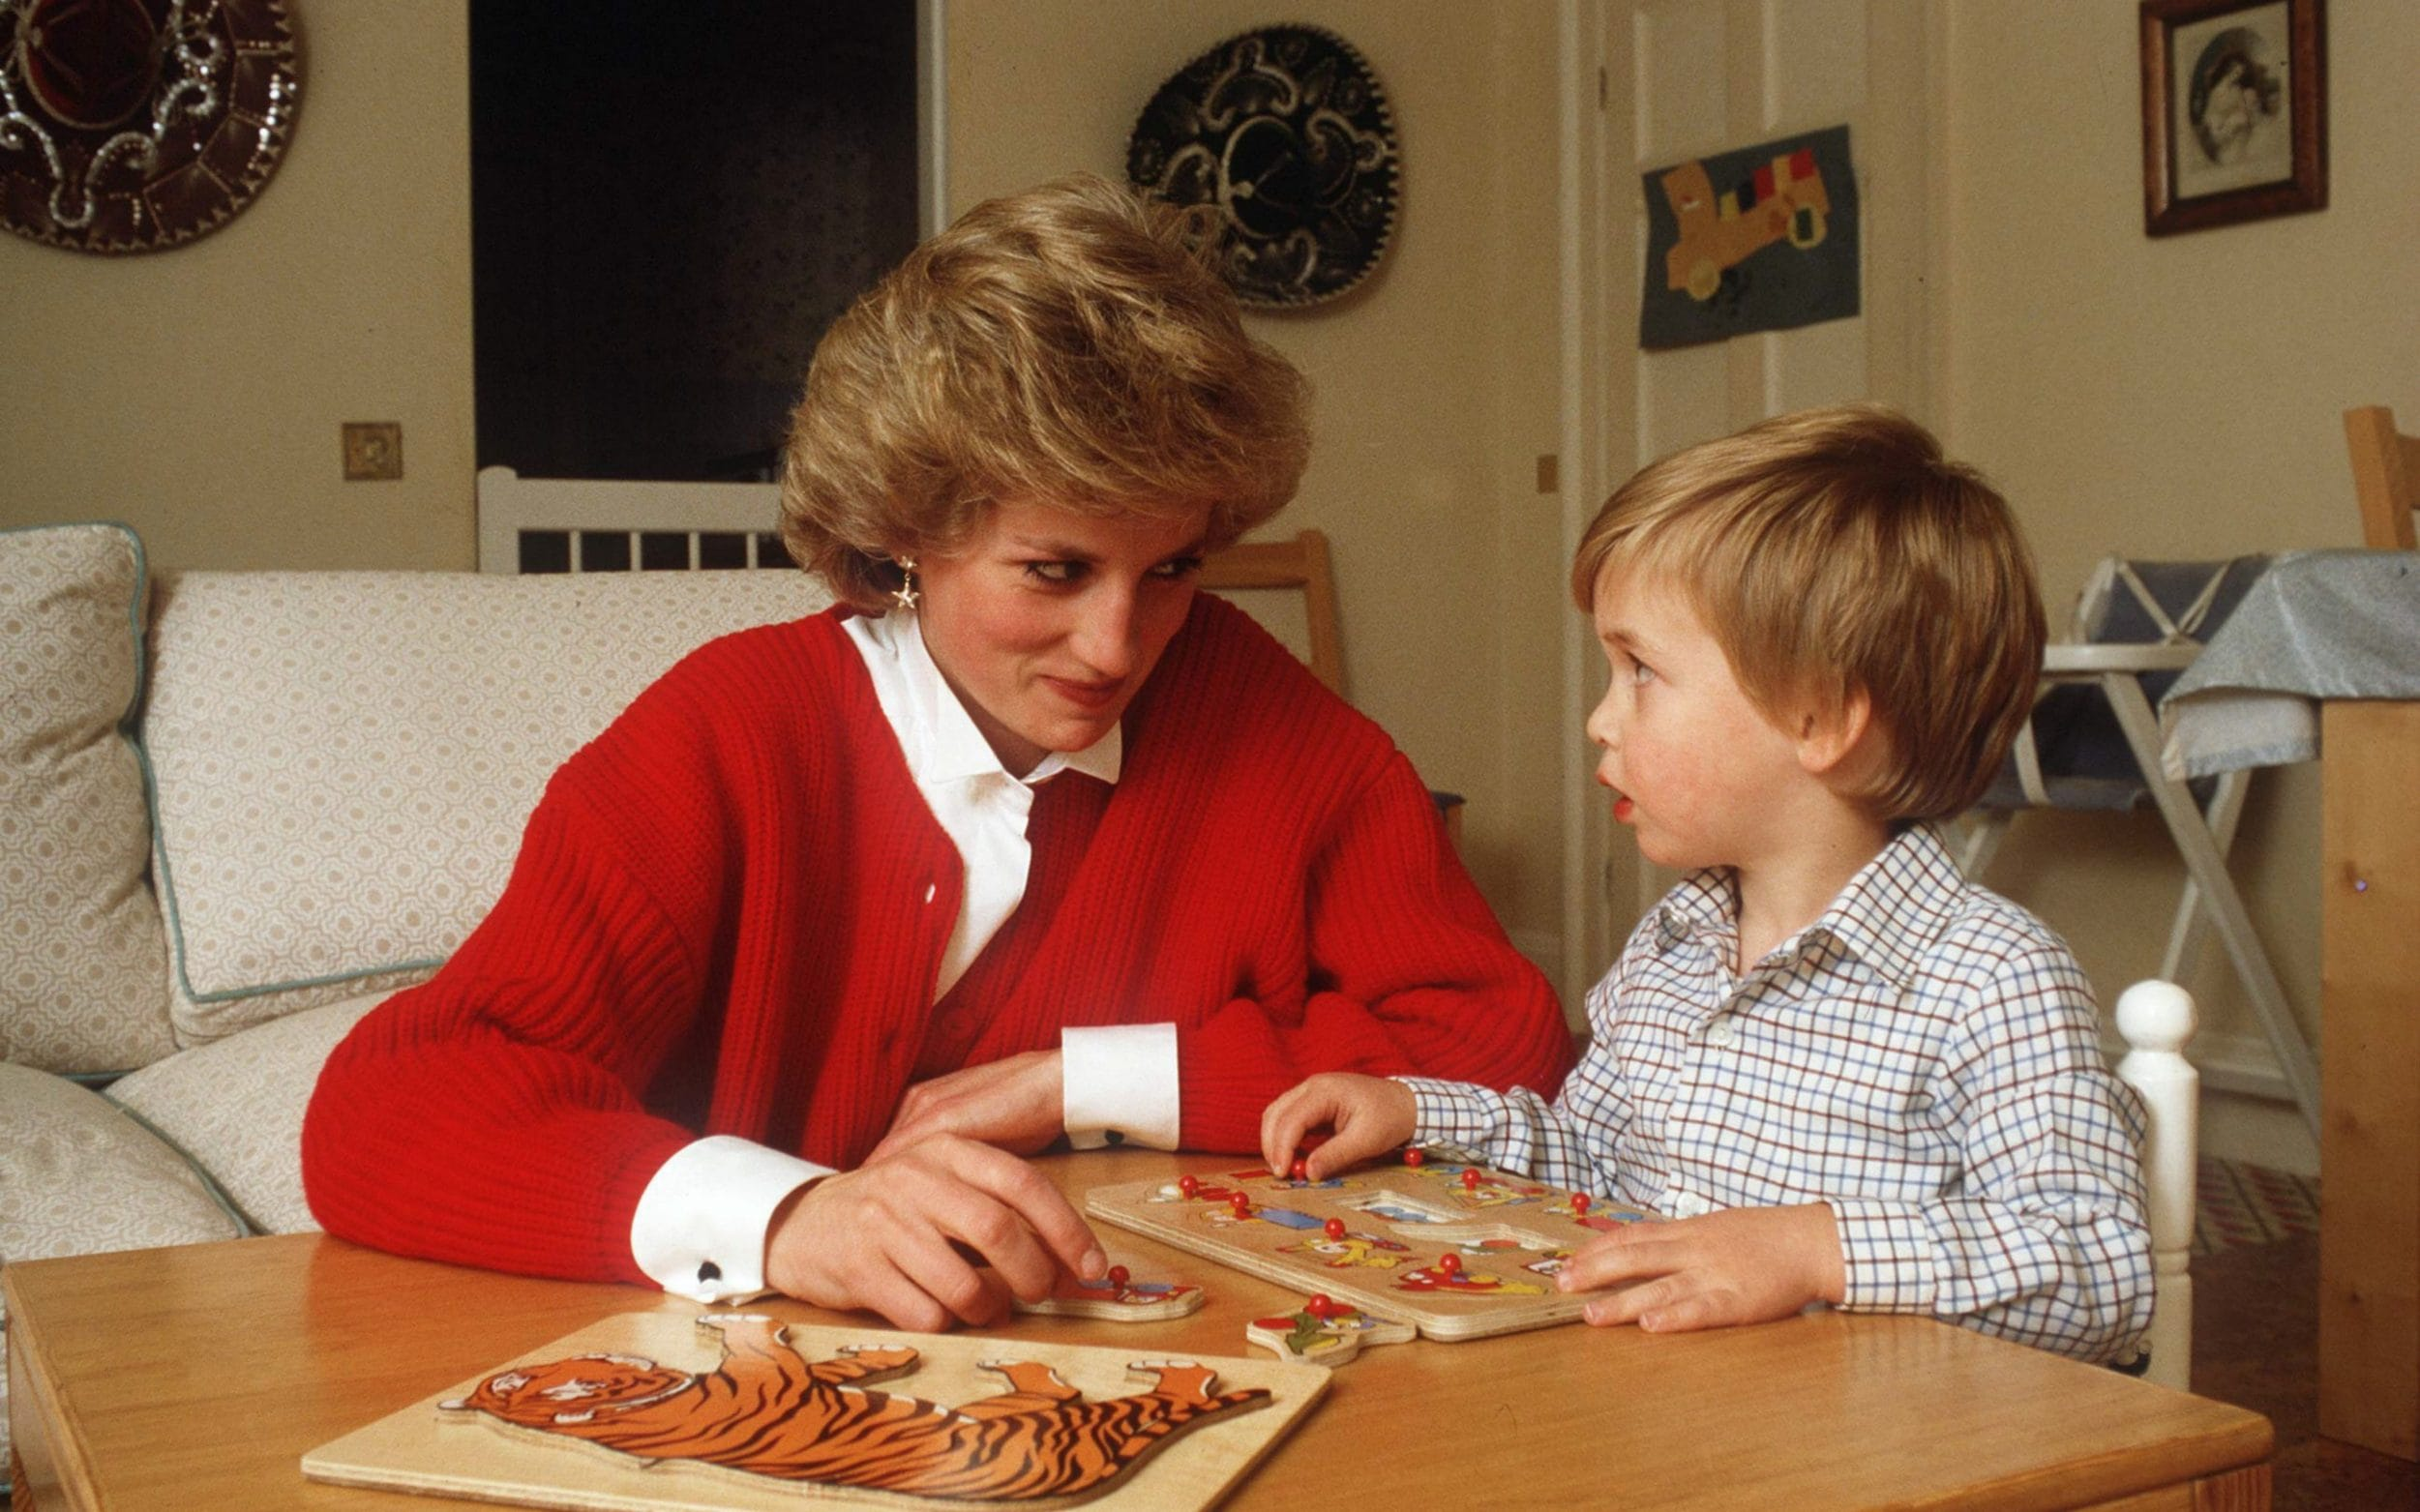 Diana, Princess of Wales, with a young Prince William